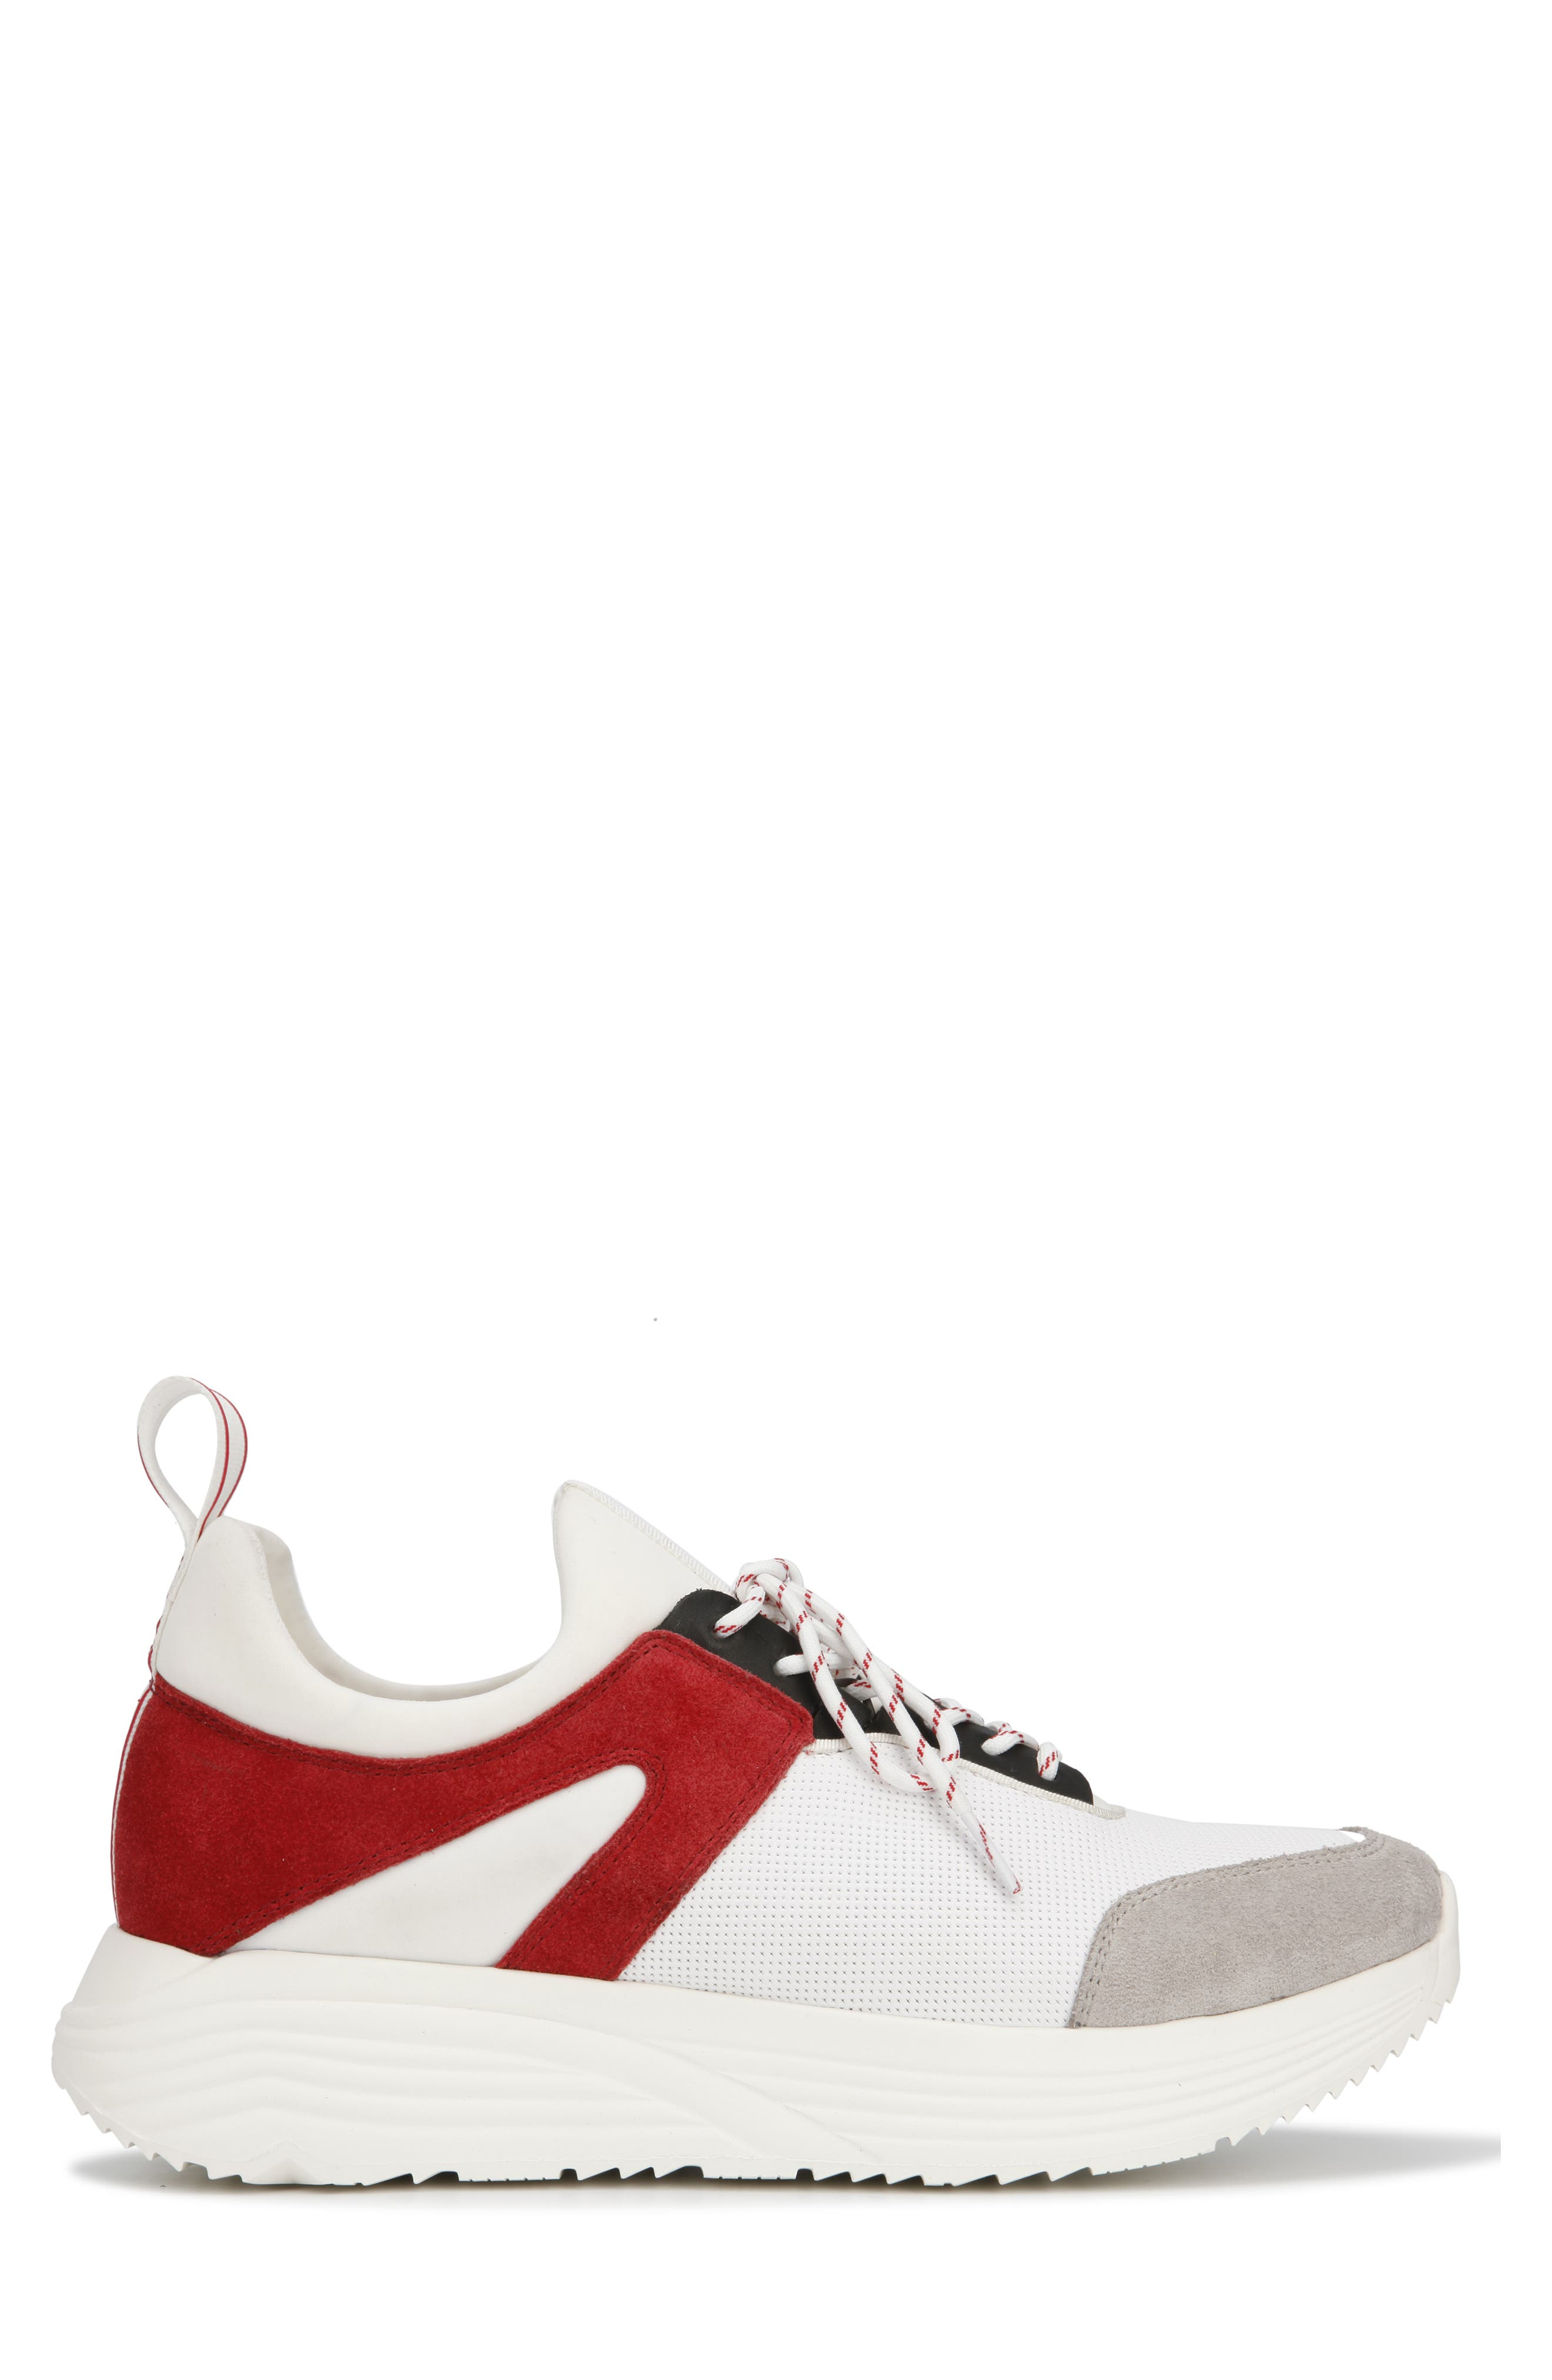 KENNETH COLE NEW YORK, Un-Dad Sneaker, Alternate thumbnail 2, color, WHITE/ RED LEATHER